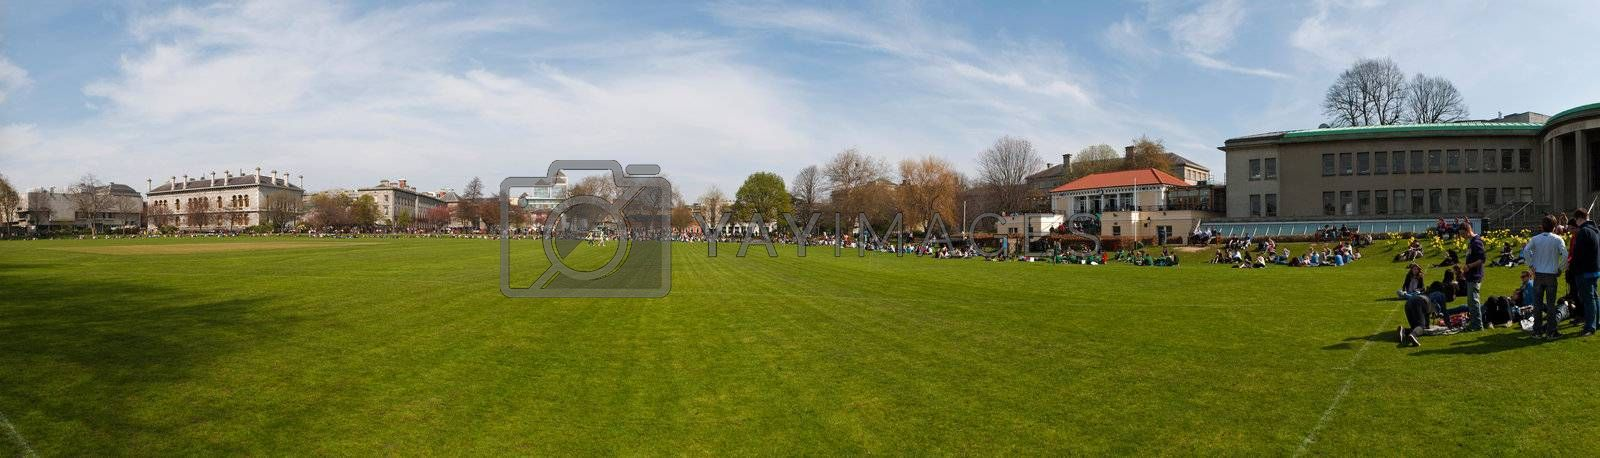 DUBLIN, IRELAND - MARCH 29: students enjoying outdoors at the cricket field in the Trinity College on March 29, 2012 in Dublin, Ireland.Ranked in 2011 by The Times as the 117th world's best university